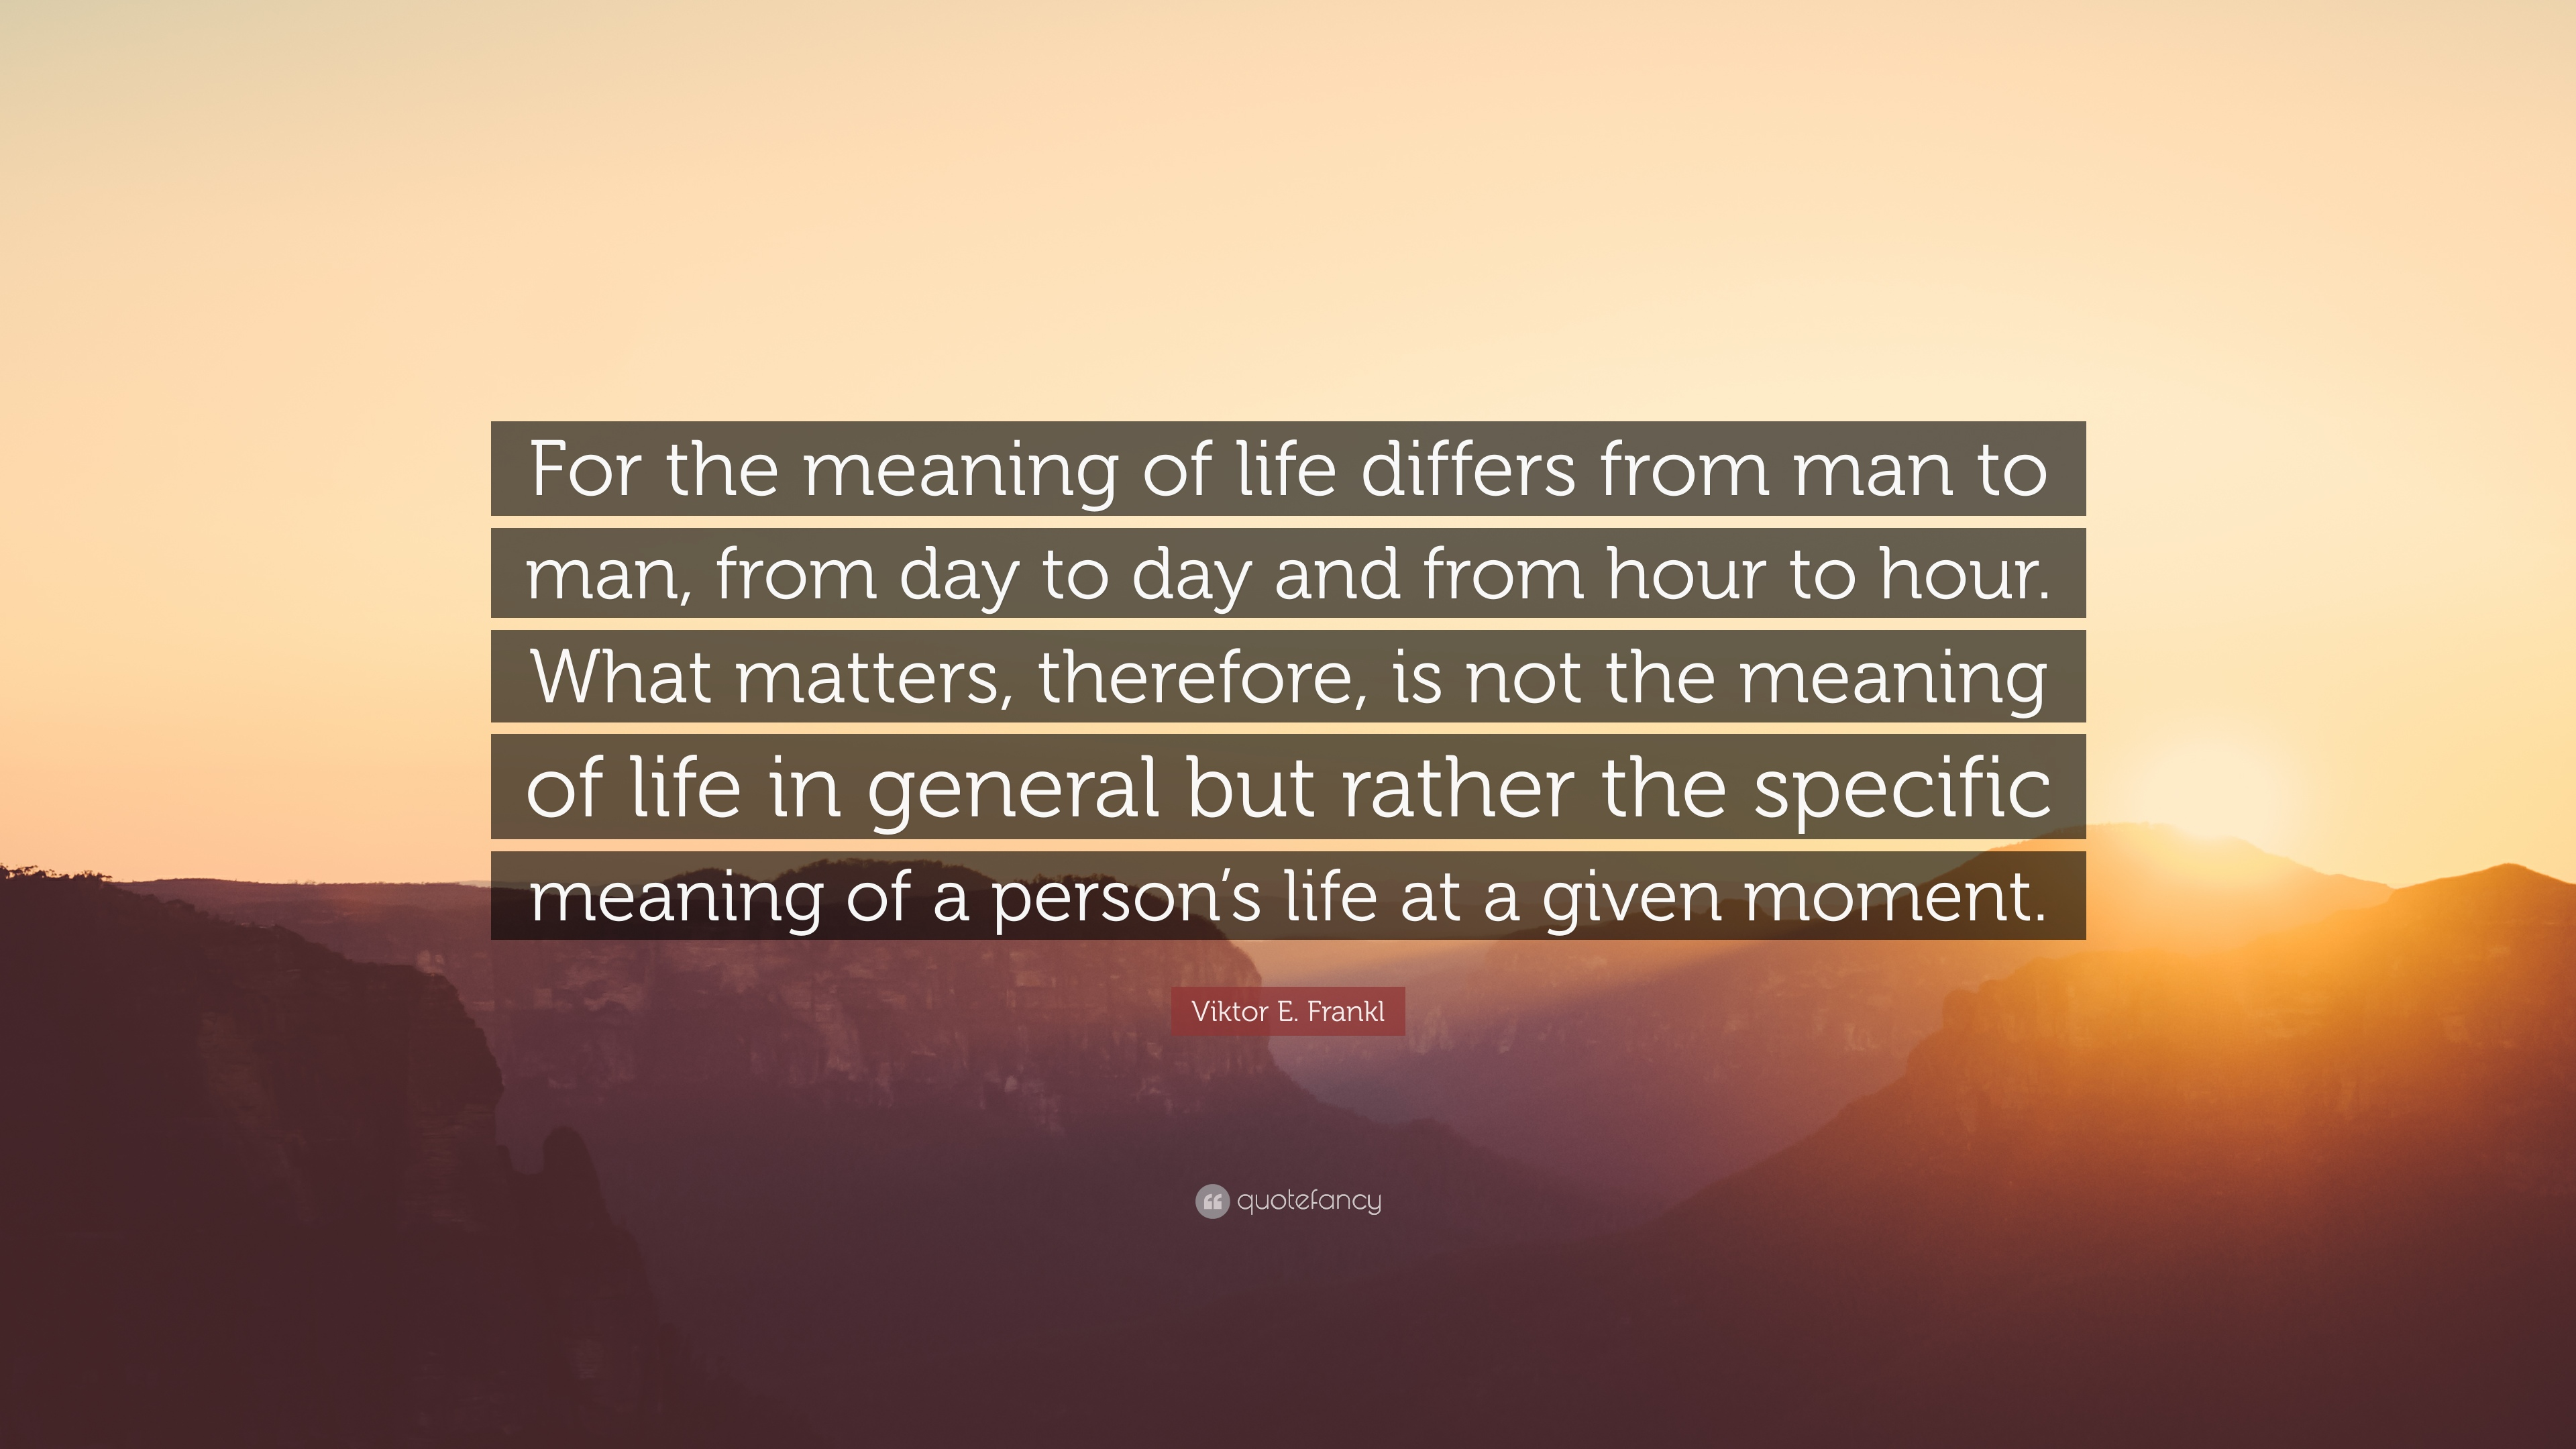 The meaning of a man